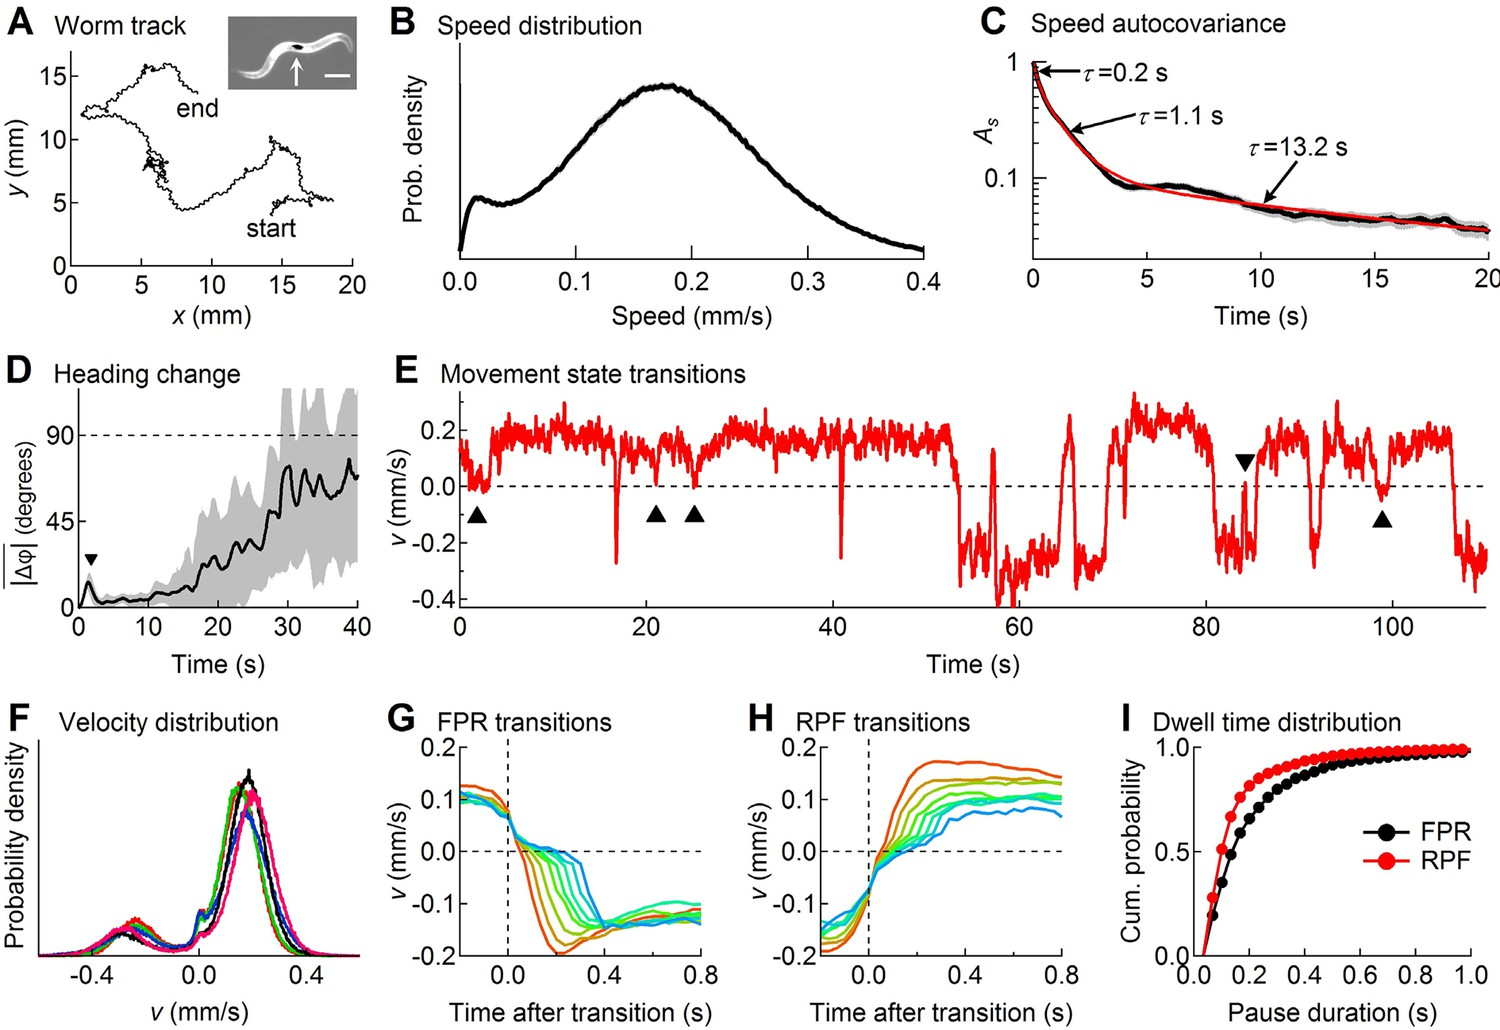 A Stochastic Neuronal Model Predicts Random Search Behaviors At An Rc Integrator Is Circuit That Approximates Themathematical Descriptive Statistics Of Wild Type Worm Tracks